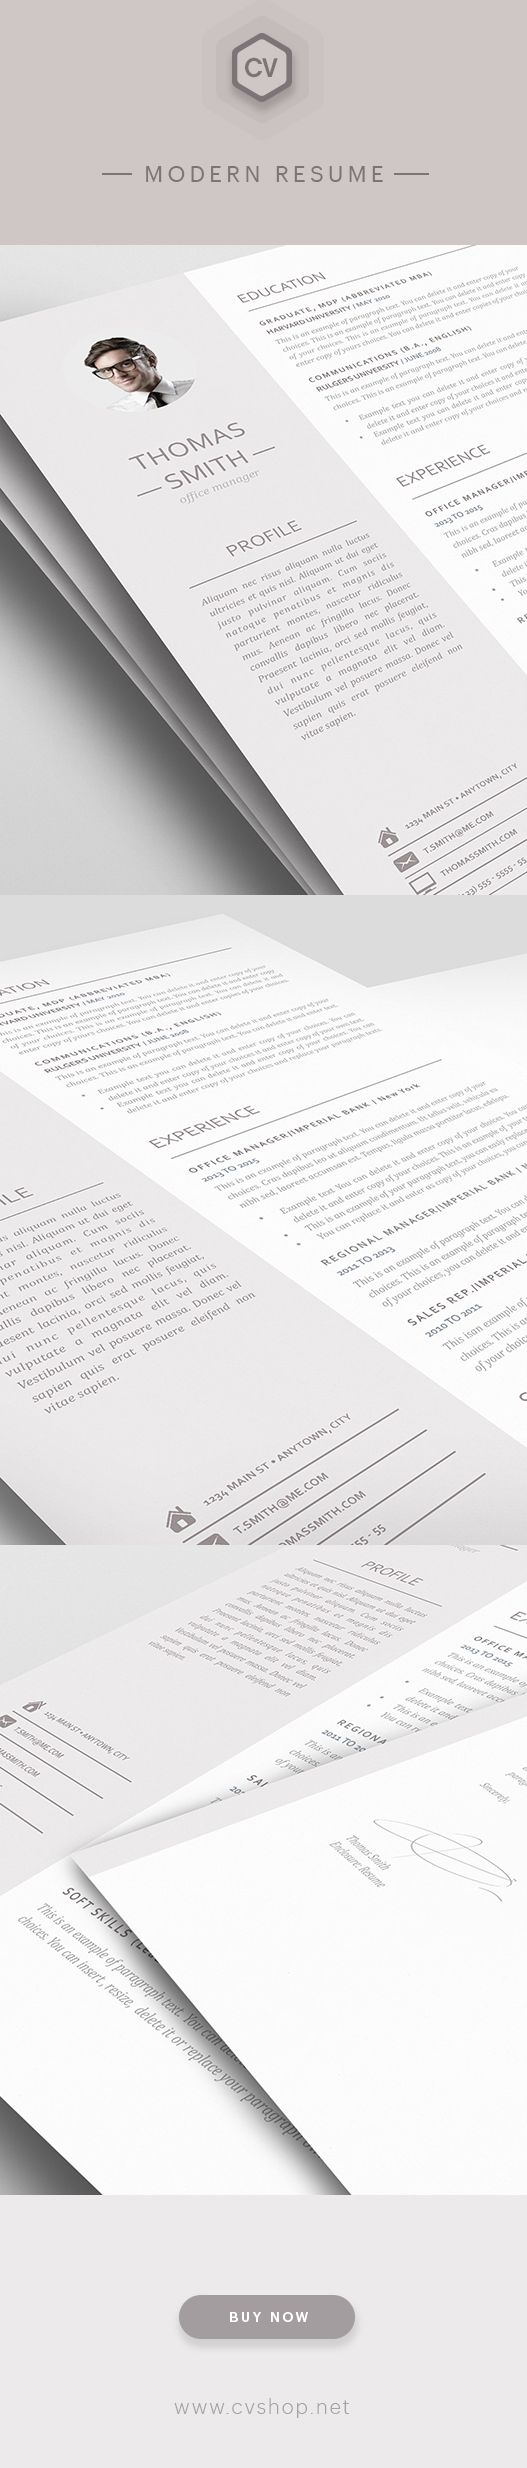 modern resume template 110960 premium line of resume cover letter templates easy edit with ms word apple pages - Resume Cover Letter Template Microsoft Word